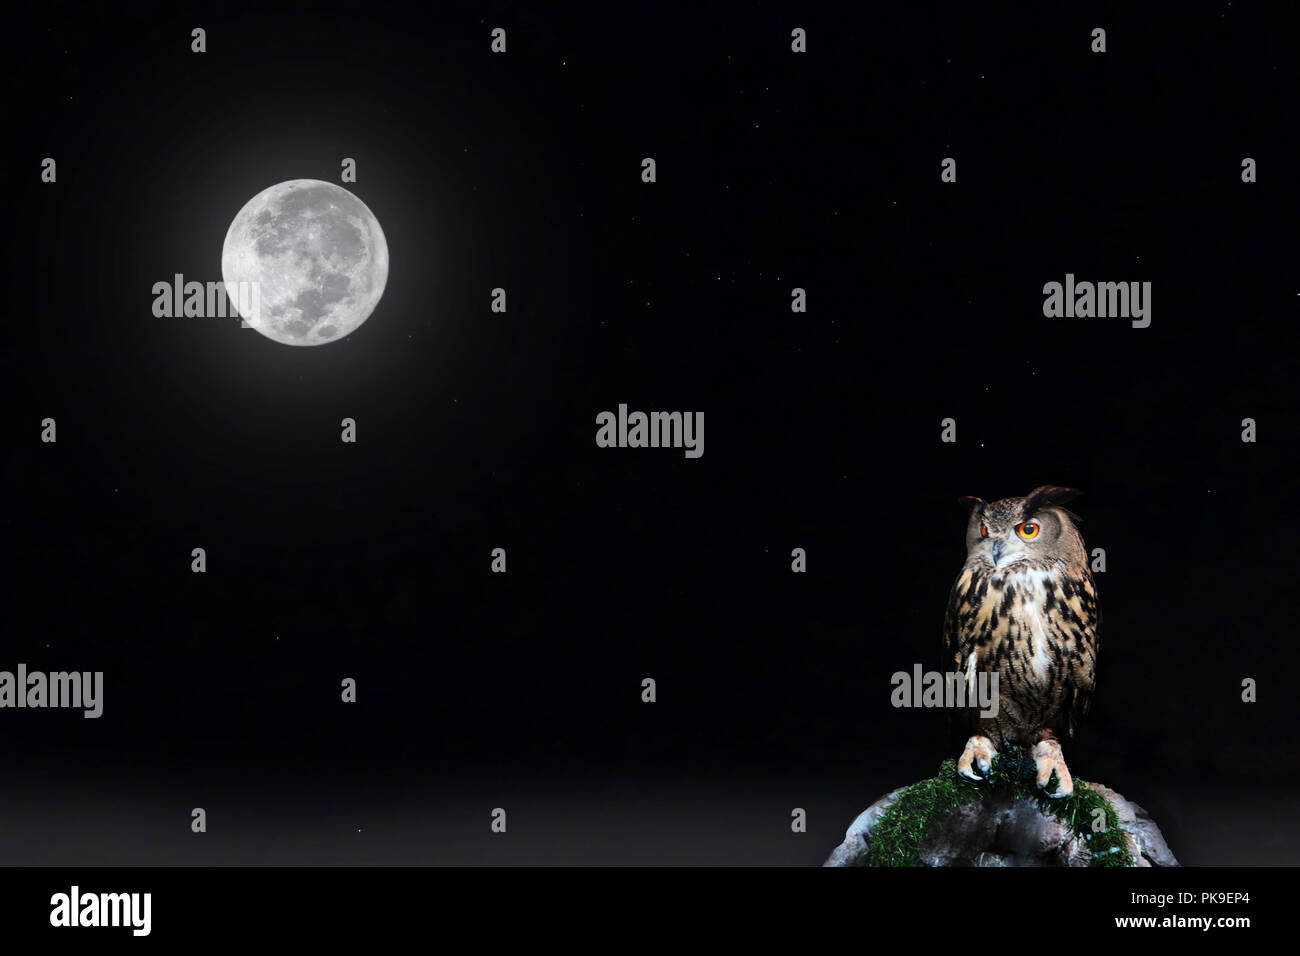 Full moon and star on night sky with owl perched on rock. Stock Photo